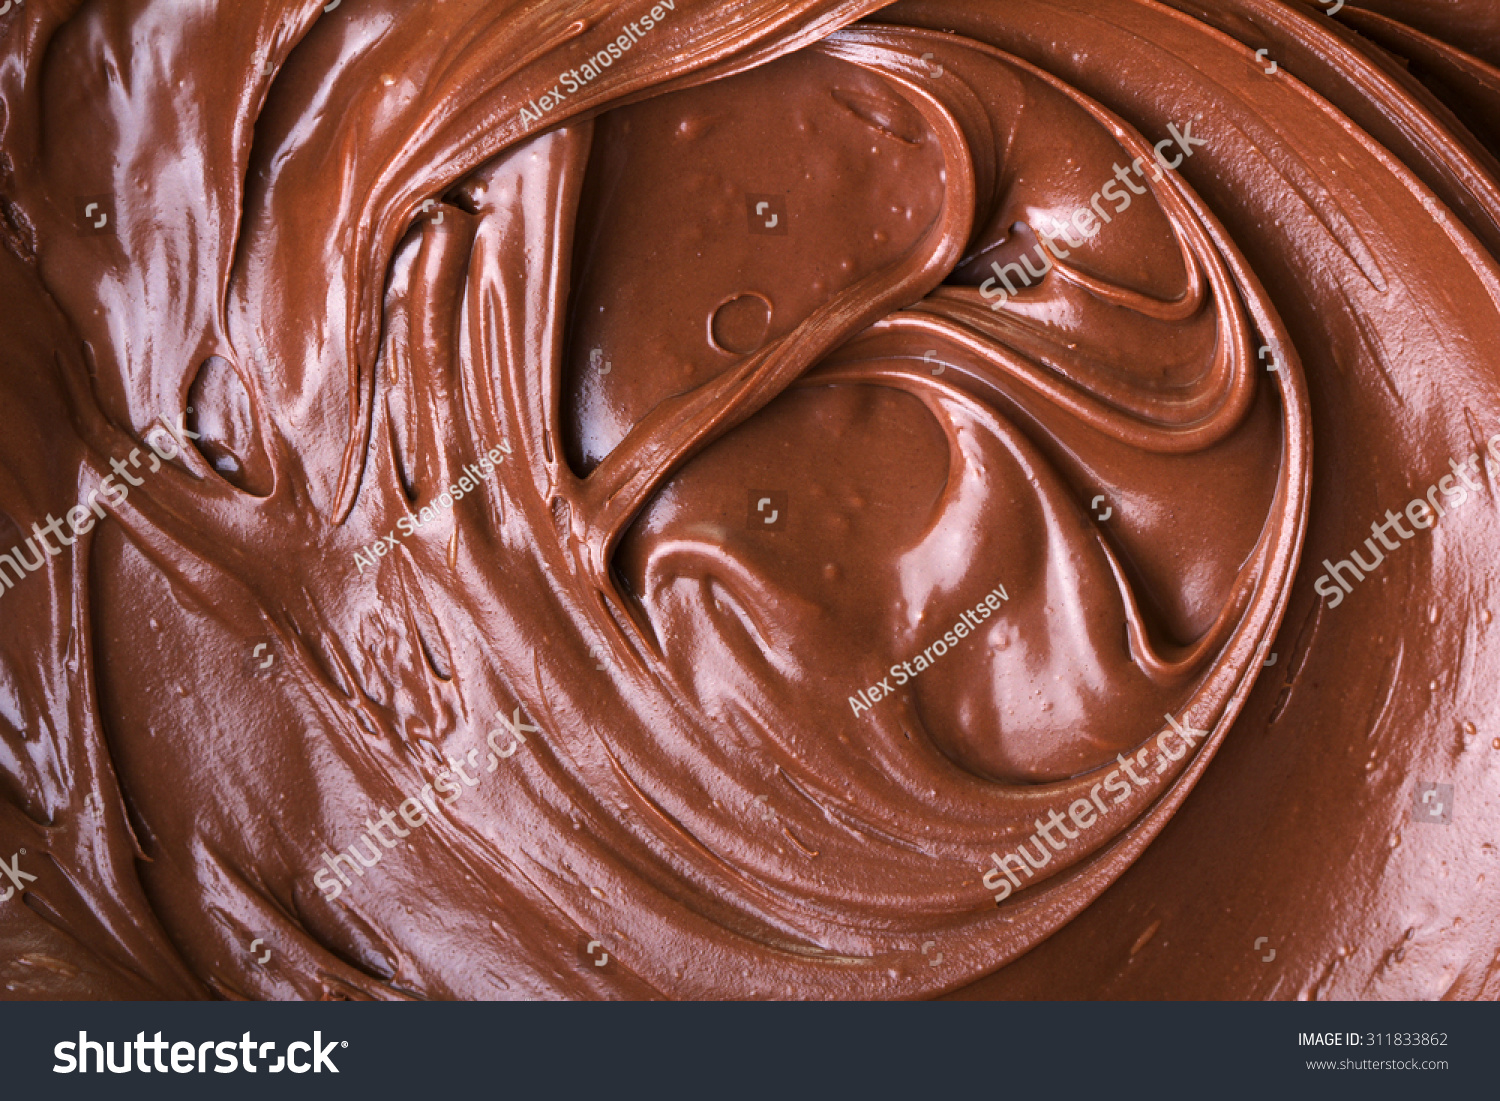 Melted Chocolate Stock Photo 311833862 - Shutterstock